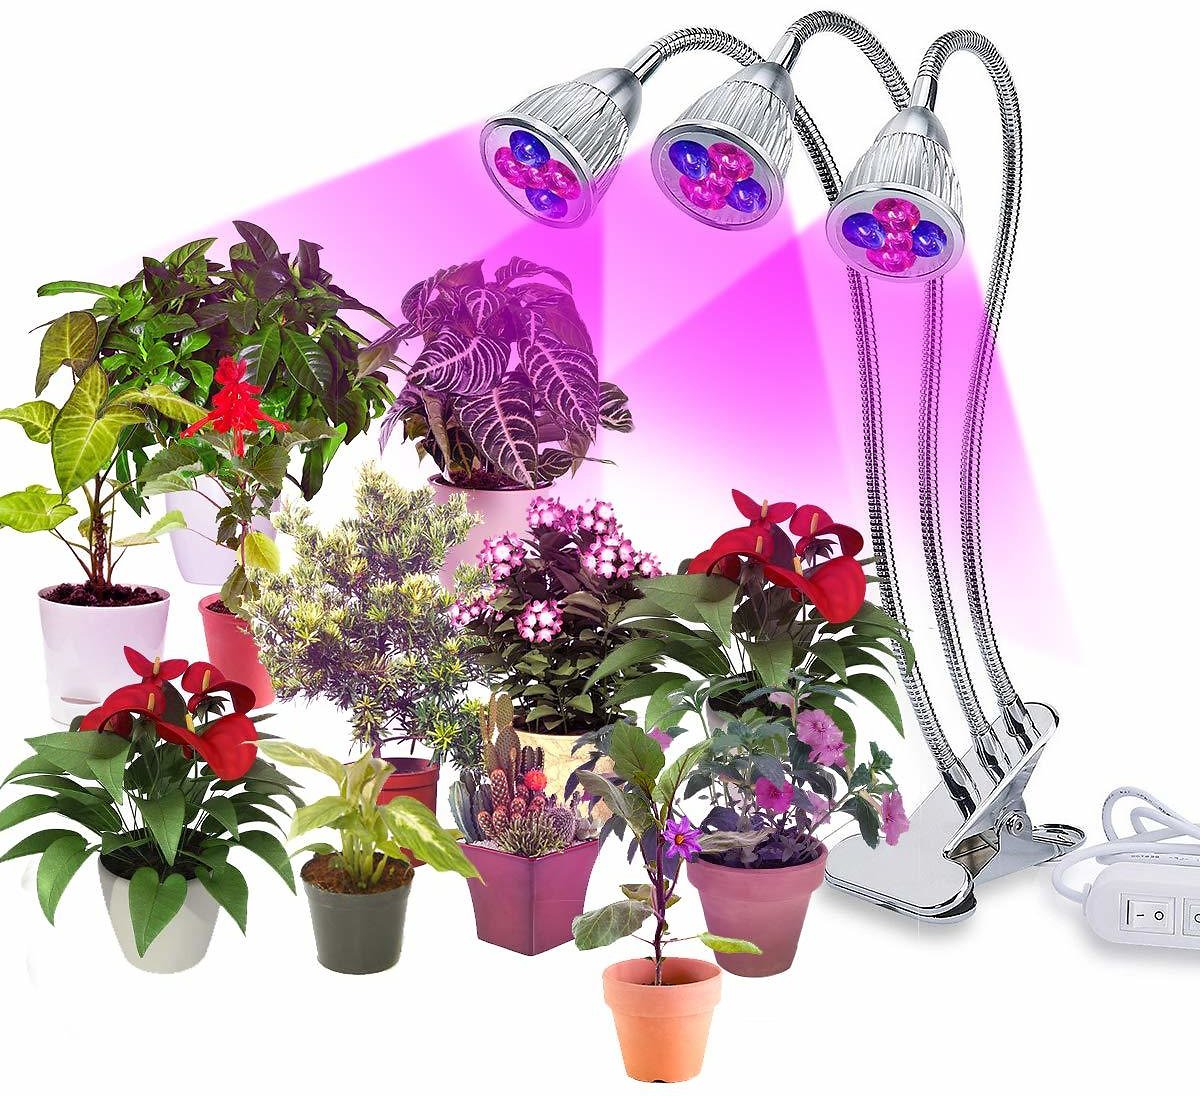 Three Head Led Grow Light Bulbs 15W 15 Bulbs Clip On Plant Grow Lamp with Flexible 360 Degree Gooseneck and Three Separate Control Switches for Indoor Plants Hydroponics Greenhouse Organic Office Home : Ustyle